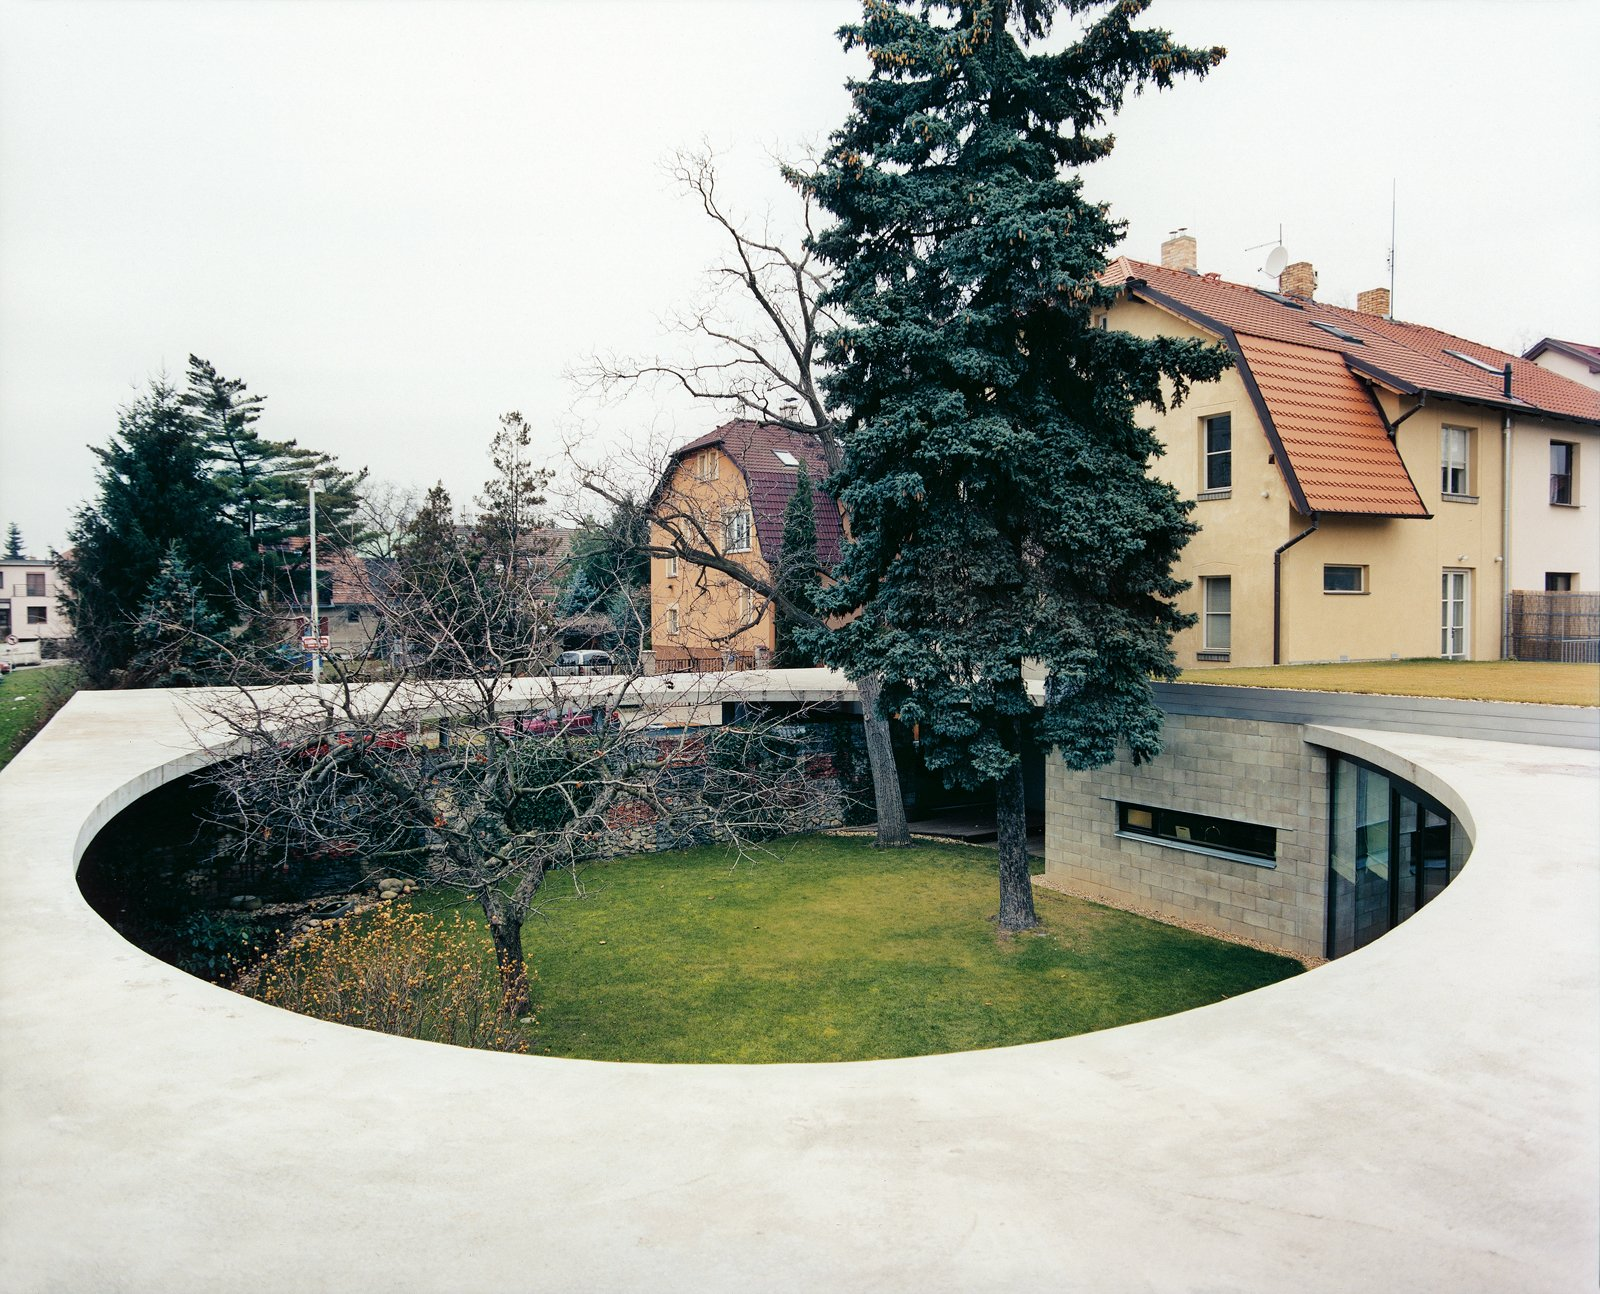 """The tension between old and new is easy to see in Prague, where Art Deco housing butts up uncomfortably with utilitarian tower blocks left behind after the Soviet invasion of 1968. Even the homeowners' attitude reflects this. """"I'm used to that antique style and always thought I would live like that,"""" Johana Ru˚žičková explains. """"I know that conflict."""""""